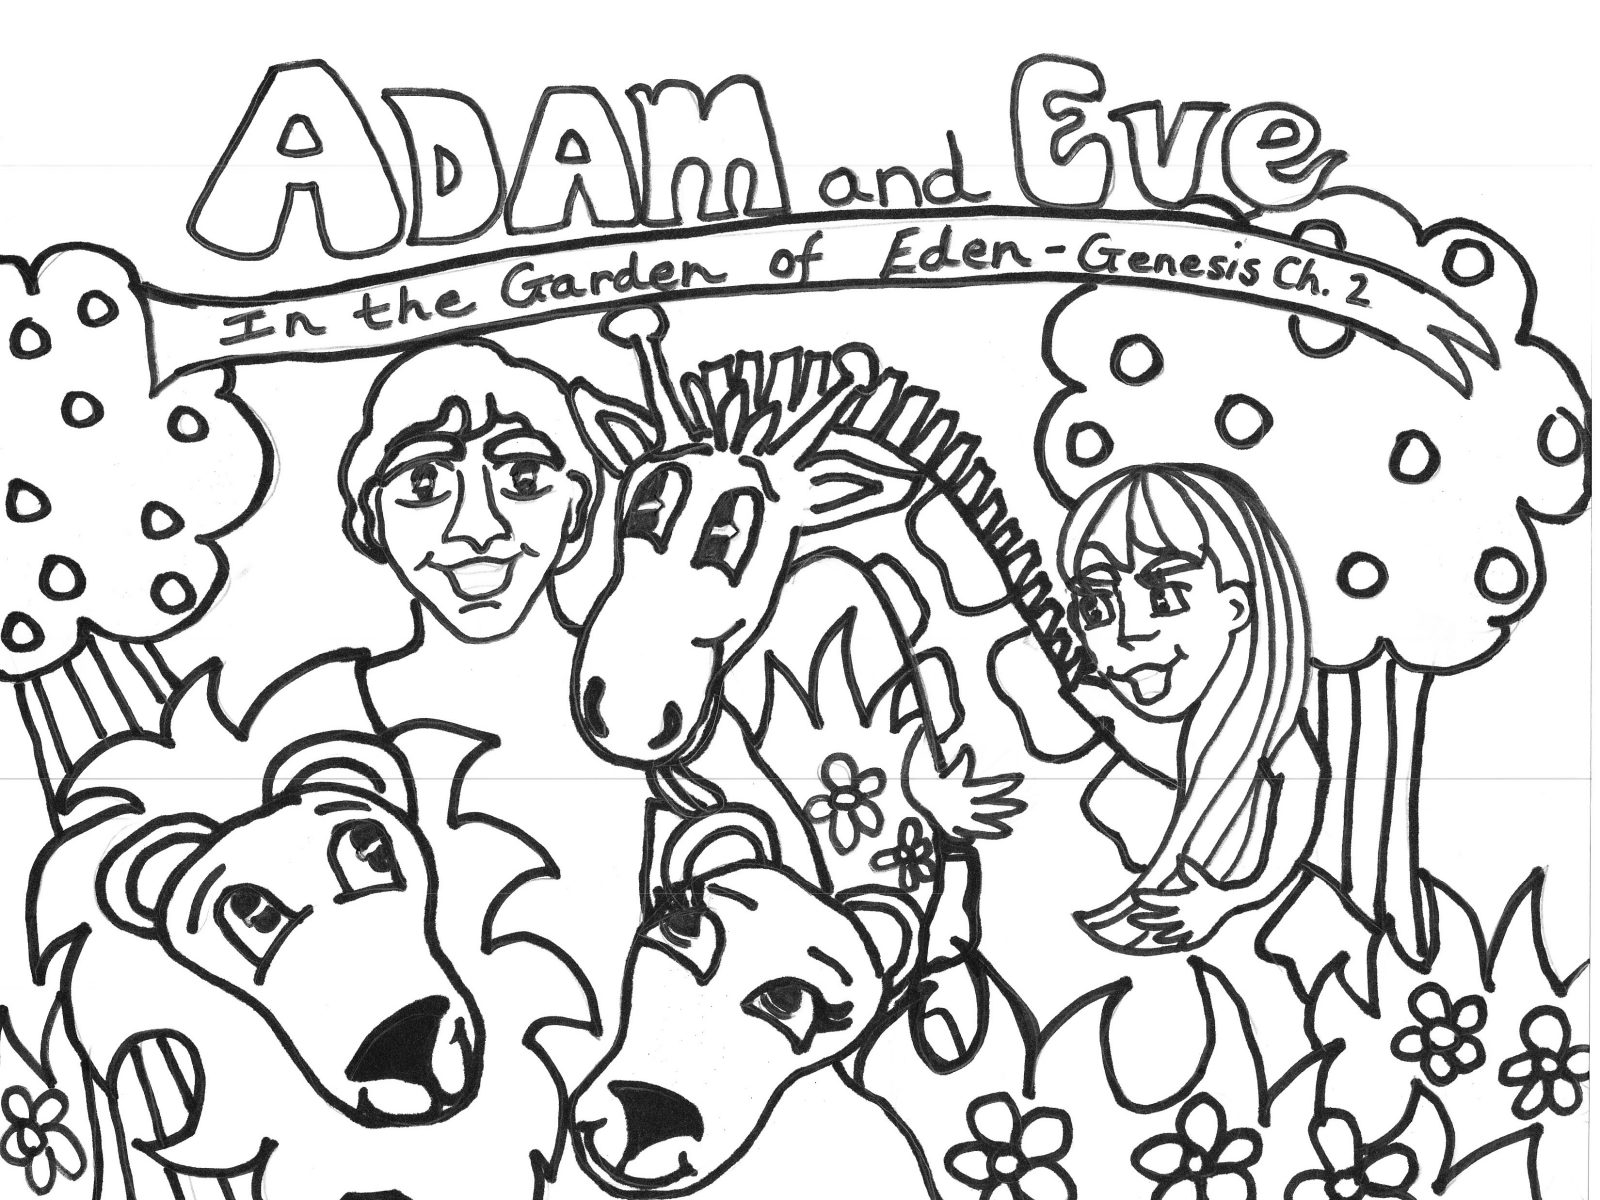 adam and eve coloring sheet adam and eve coloring page bible story coloring pages adam coloring eve sheet and